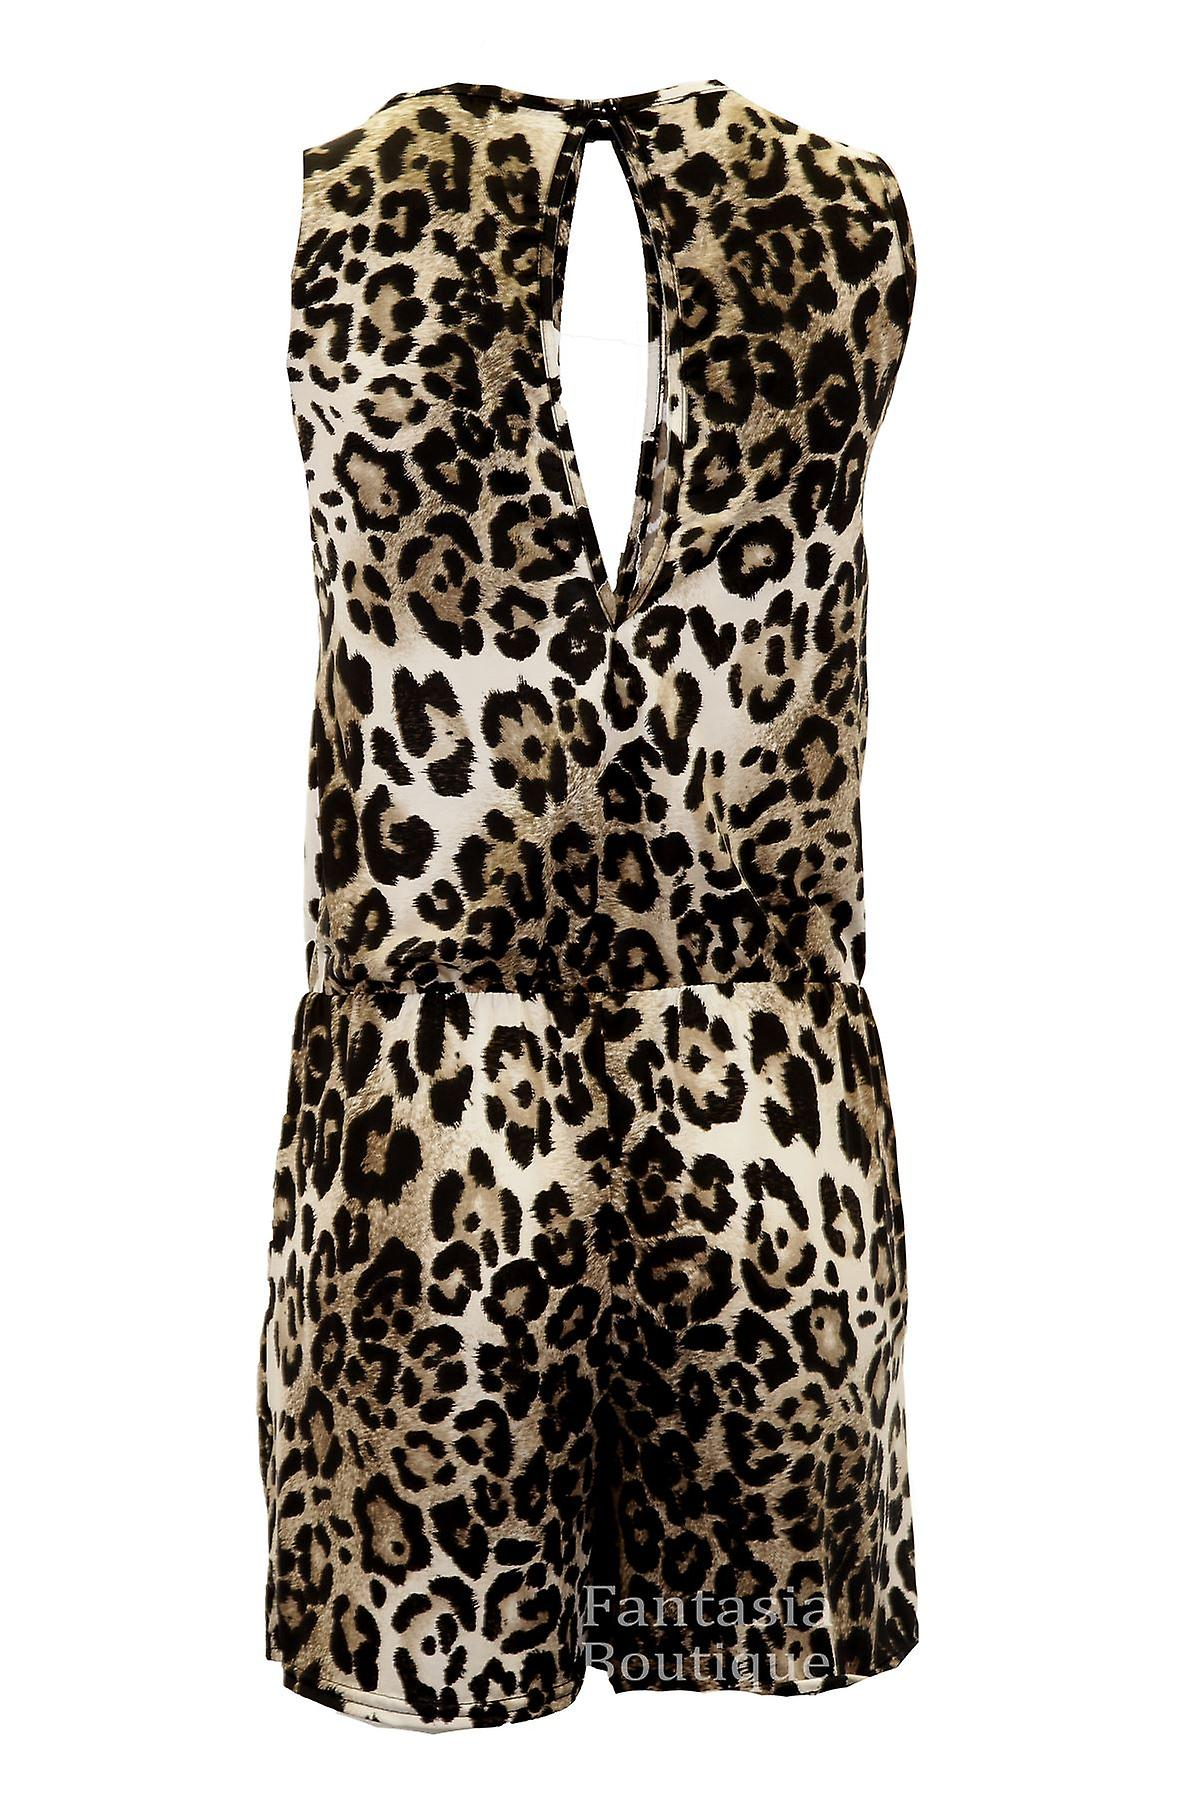 New Ladies Sleeveless Cut Out Back Leopard Print Elegant Women's Shorts Playsuit